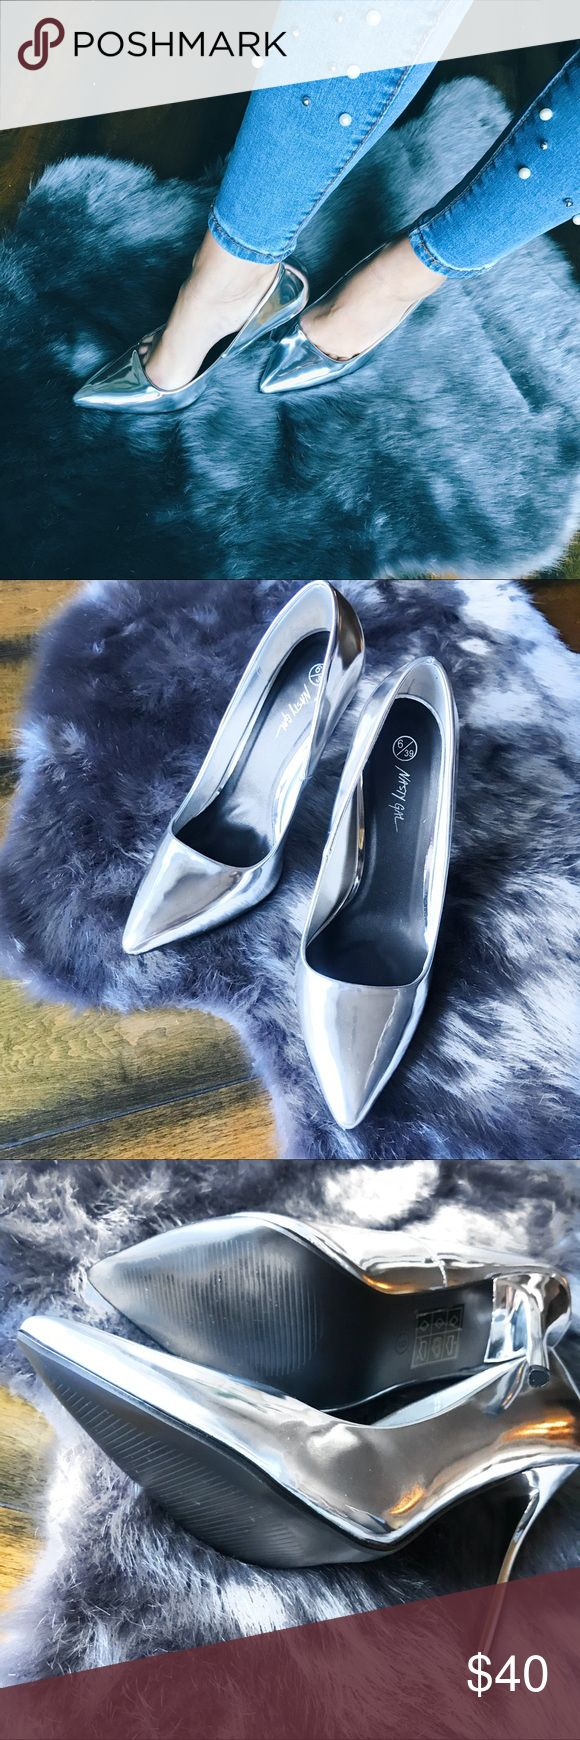 Silver Pointy Toe Pump Silver metallic point toe stiletto heel. Slip on design. Size EUR 39. They are new from Nast Gal. They say size 9 but I think they fit more like 8.5. They come with a box. Nasty Gal Shoes Heels